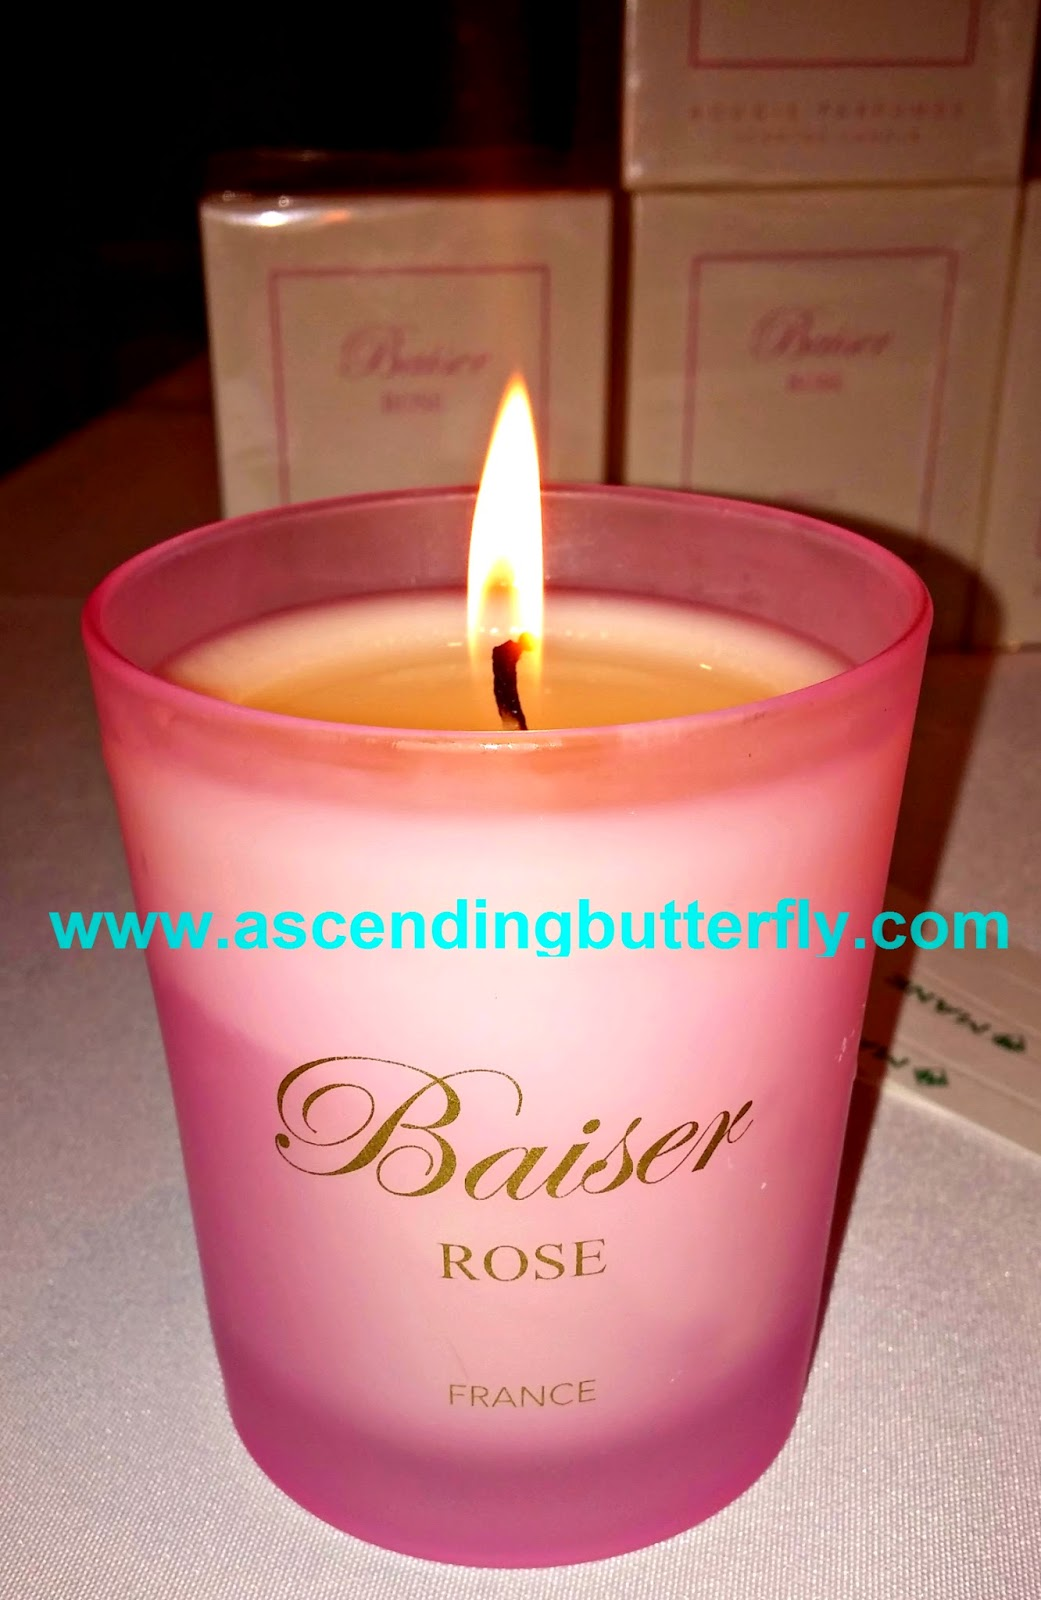 Baiser ROSE, Scented Candles